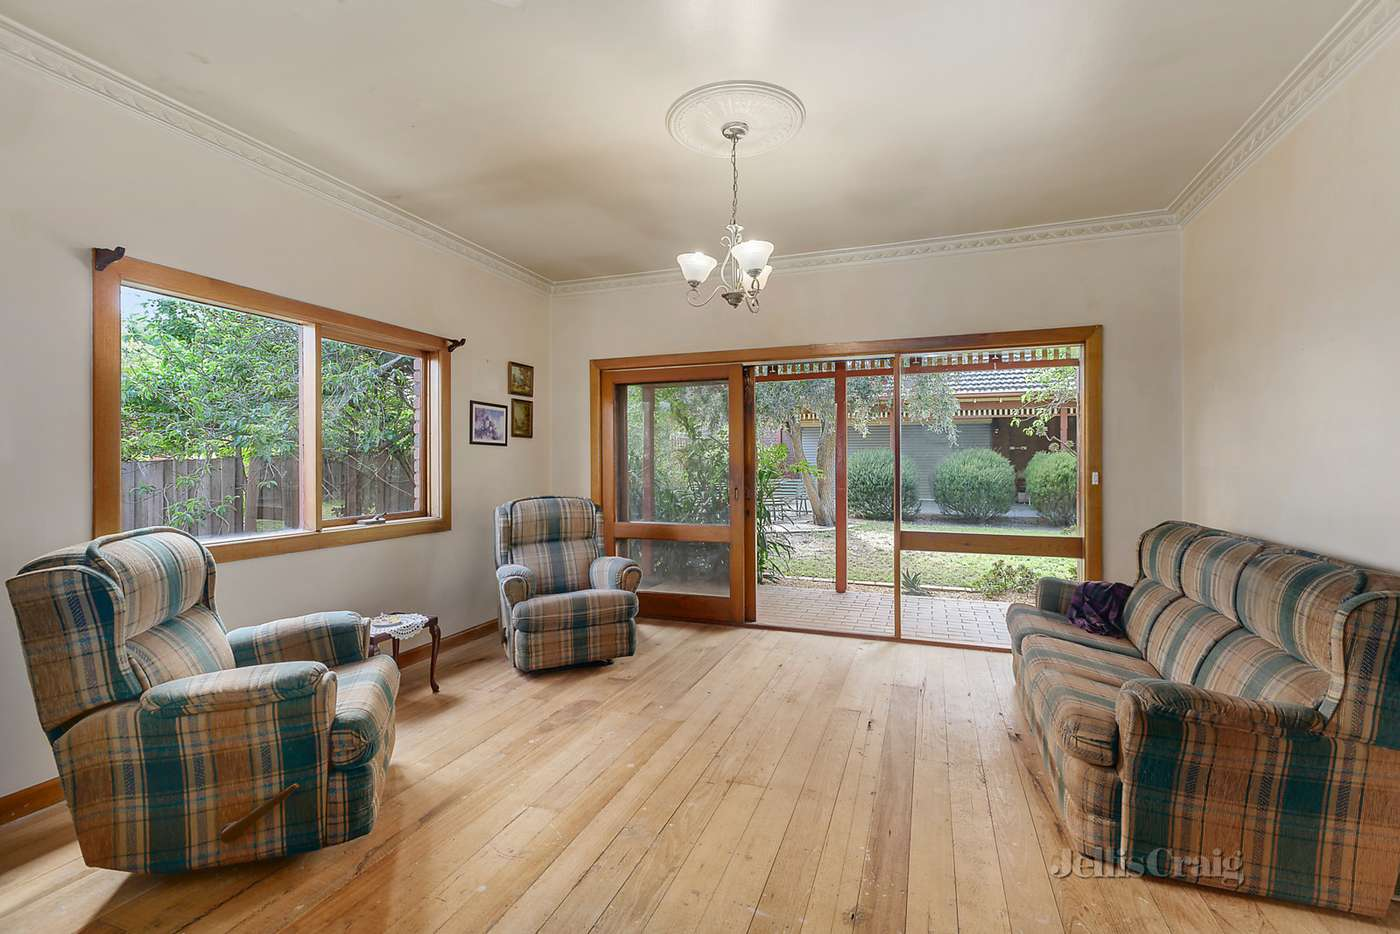 Sixth view of Homely house listing, 203 Waterdale Road, Ivanhoe VIC 3079